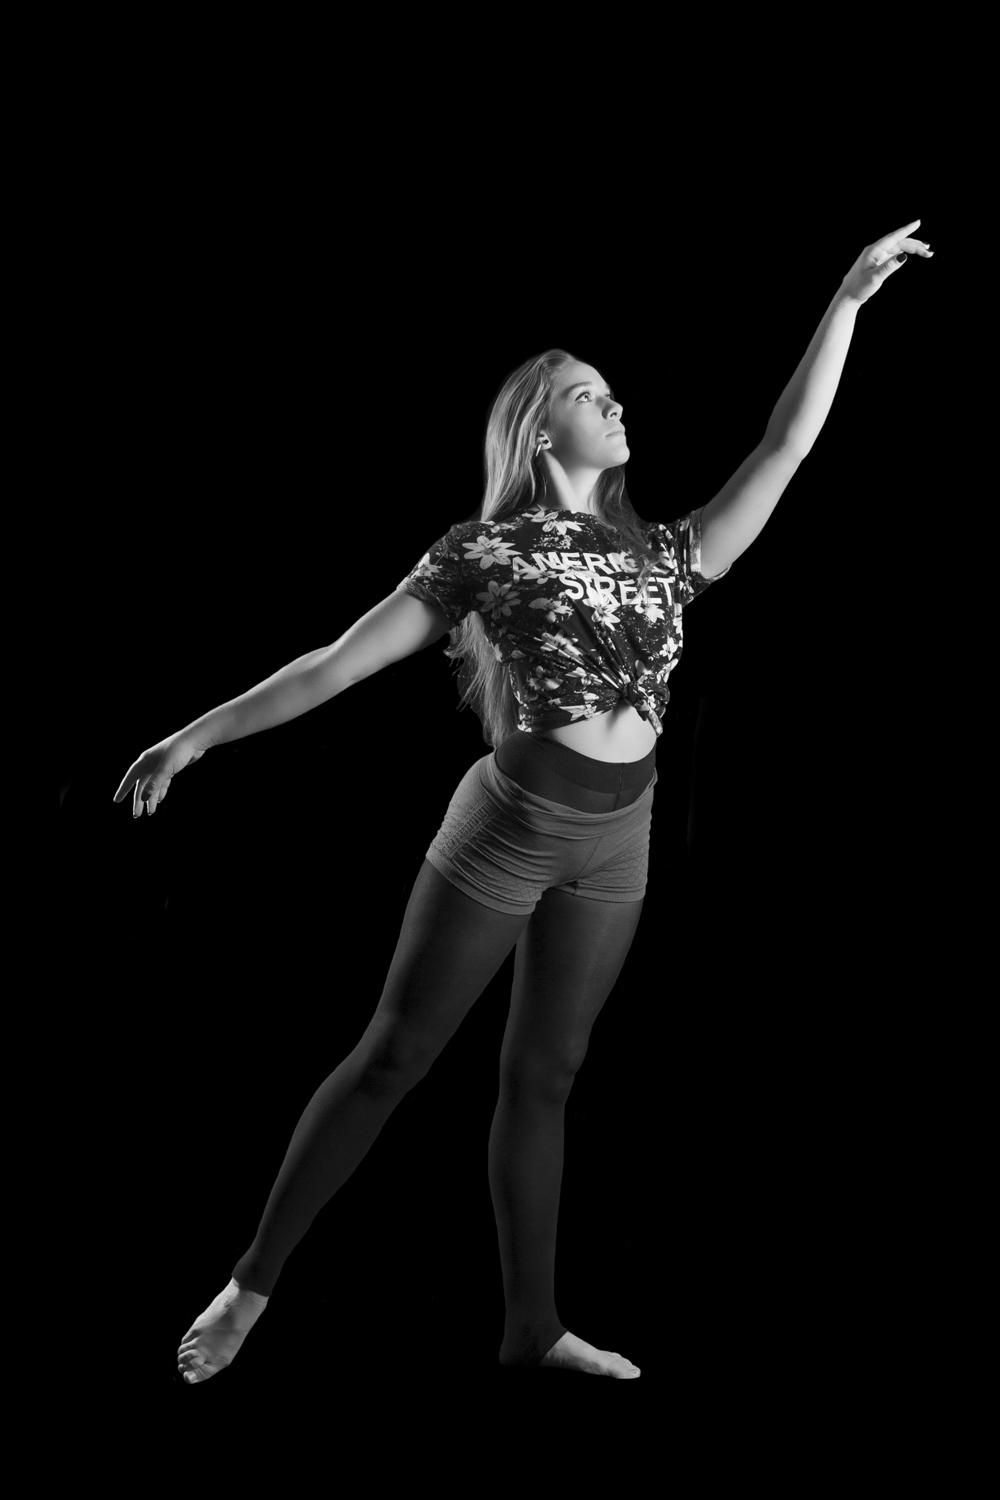 Dancers have a special quality to them.  Their bodies can produce incredibly beautiful forms.  In this series, I strived to showcase the lines and shapes a dancer's body can produce.